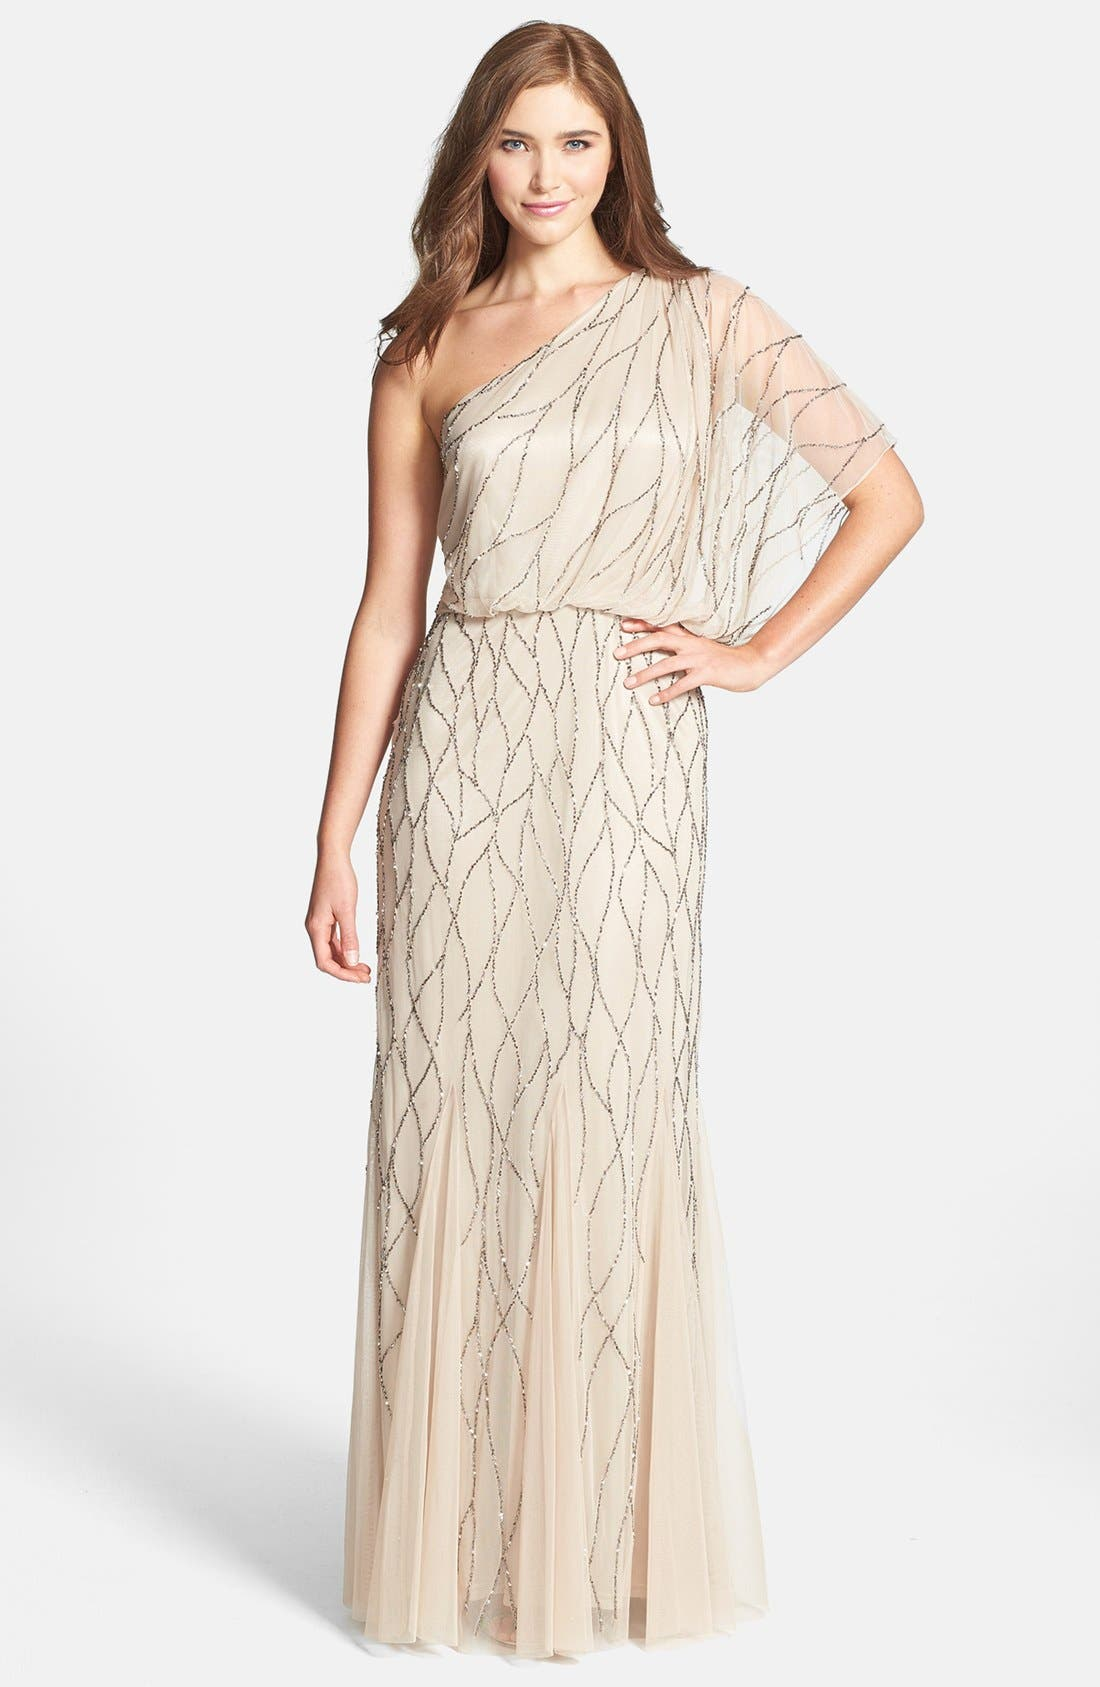 Main Image - Adrianna Papell Beaded One-Shoulder Blouson Dress